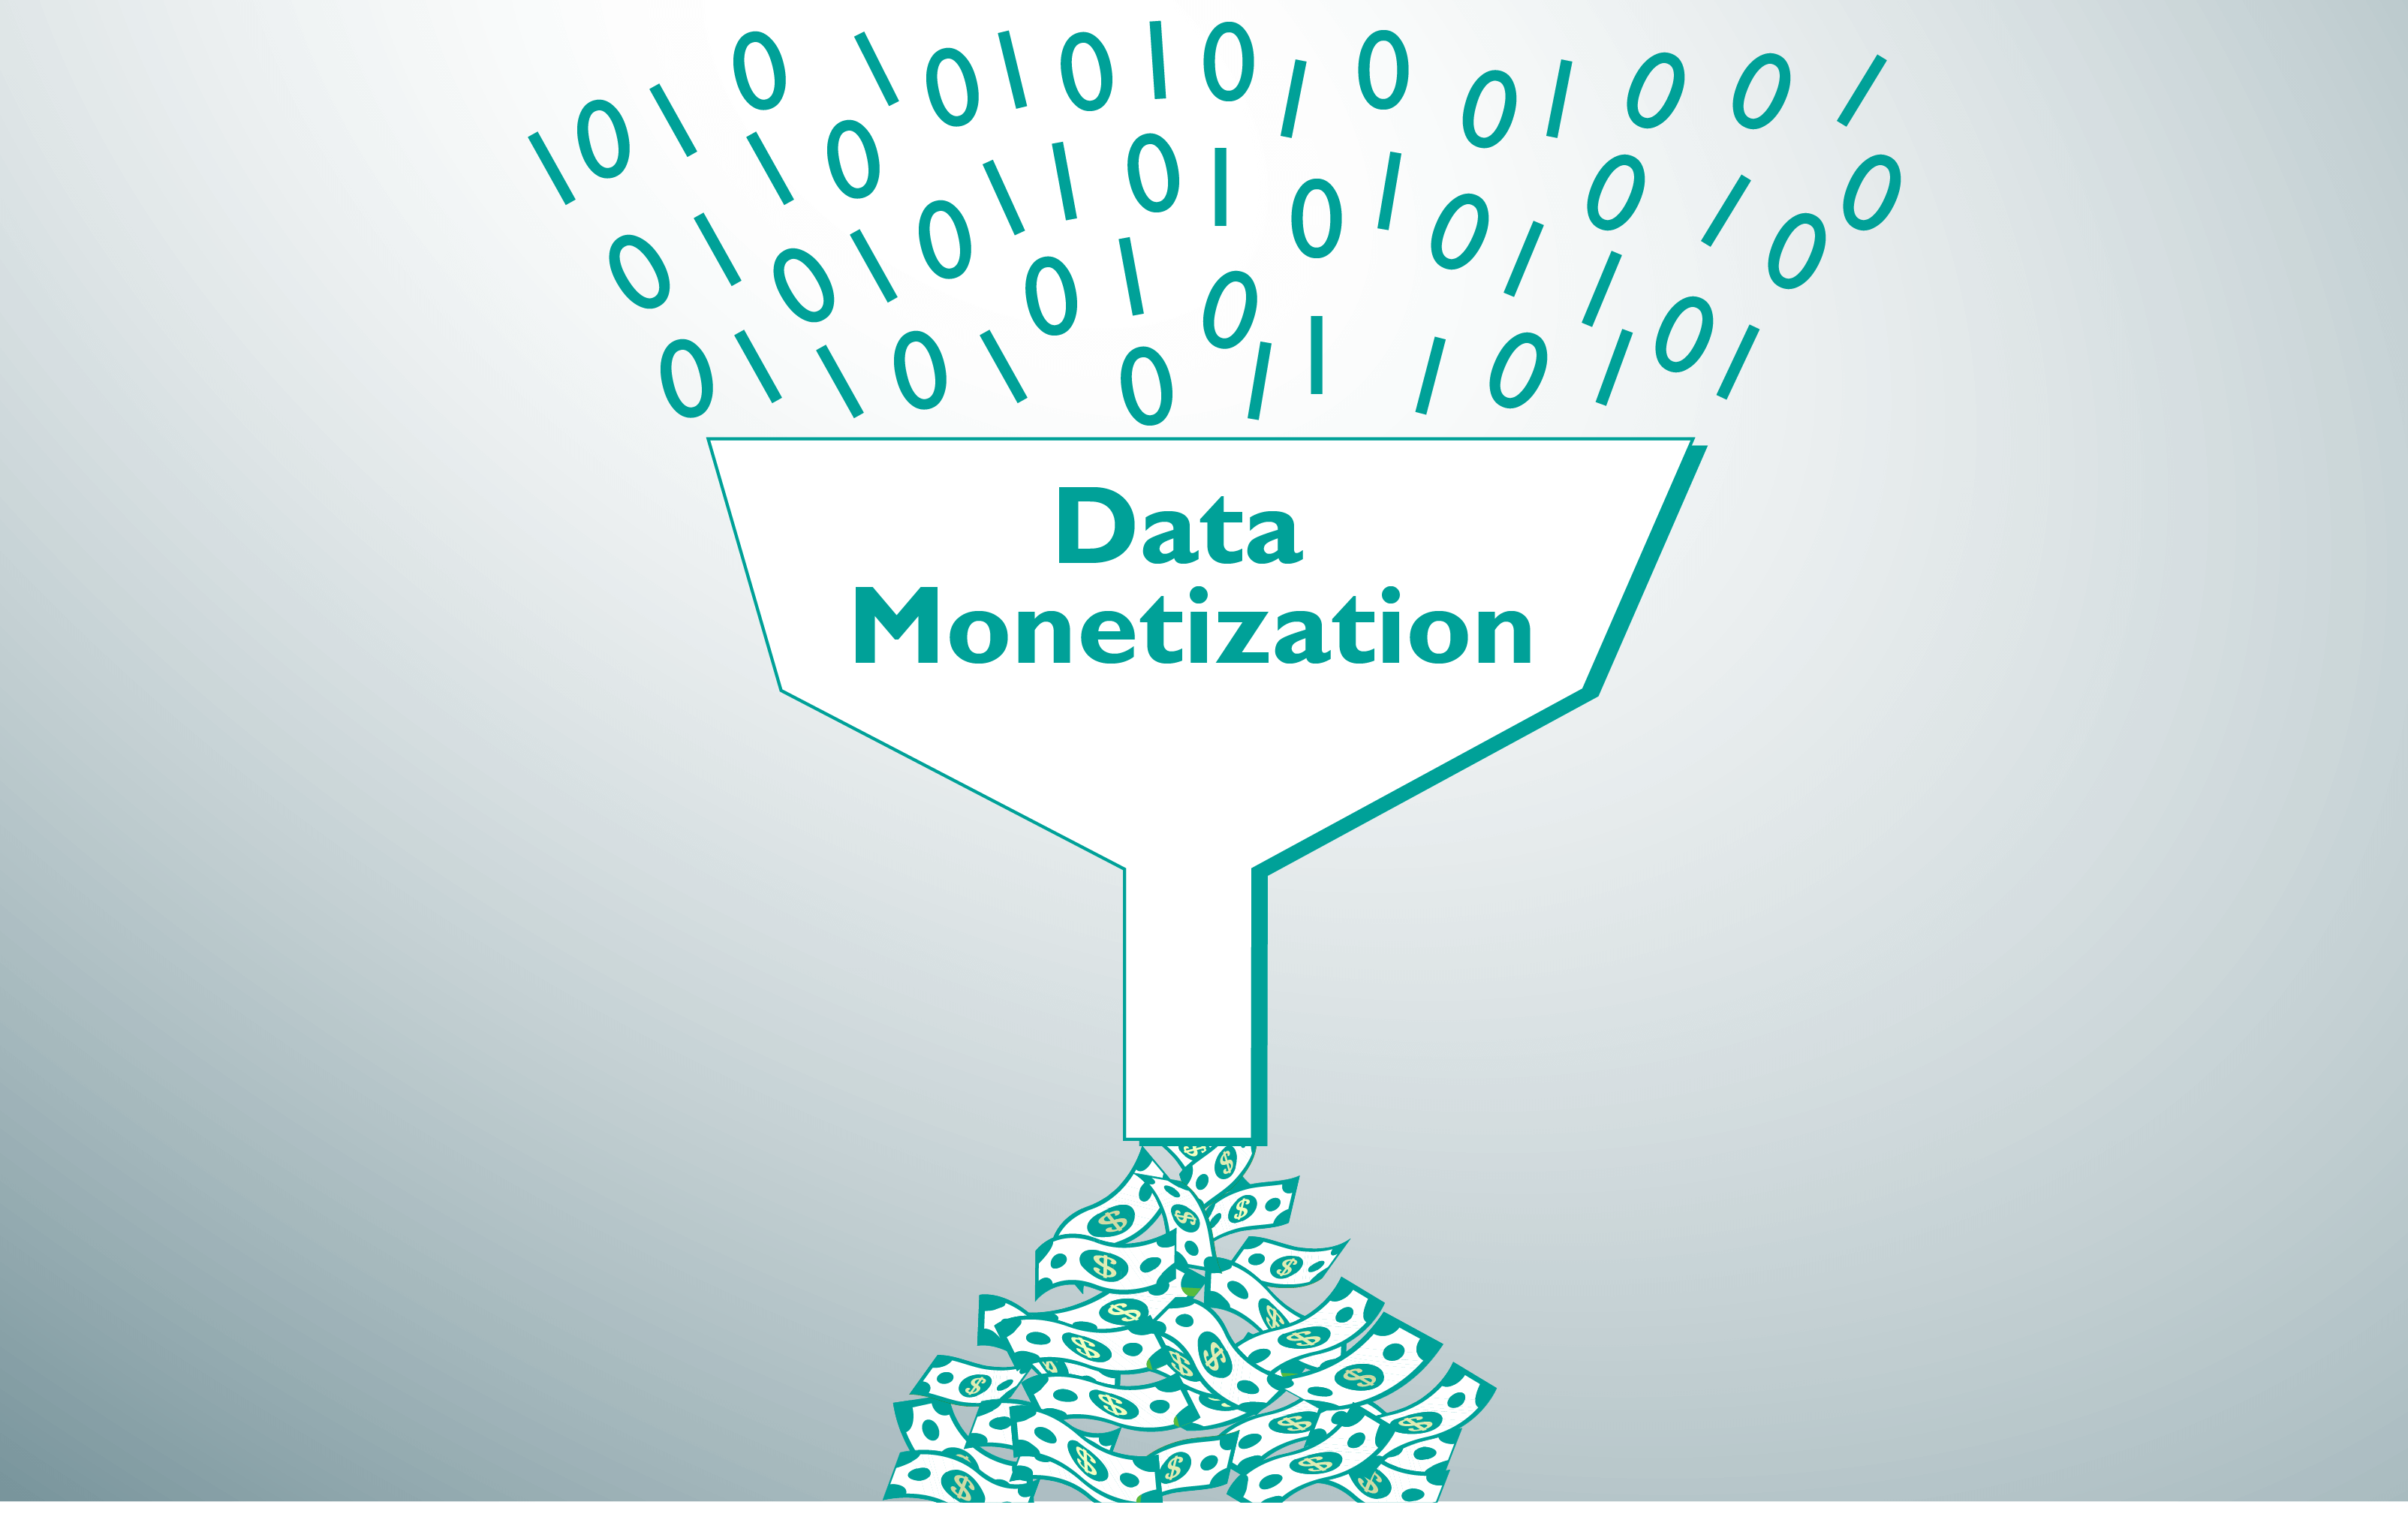 RealtimeCampaign.com Adds An Interesting Perspective on Data Monetization Strategies